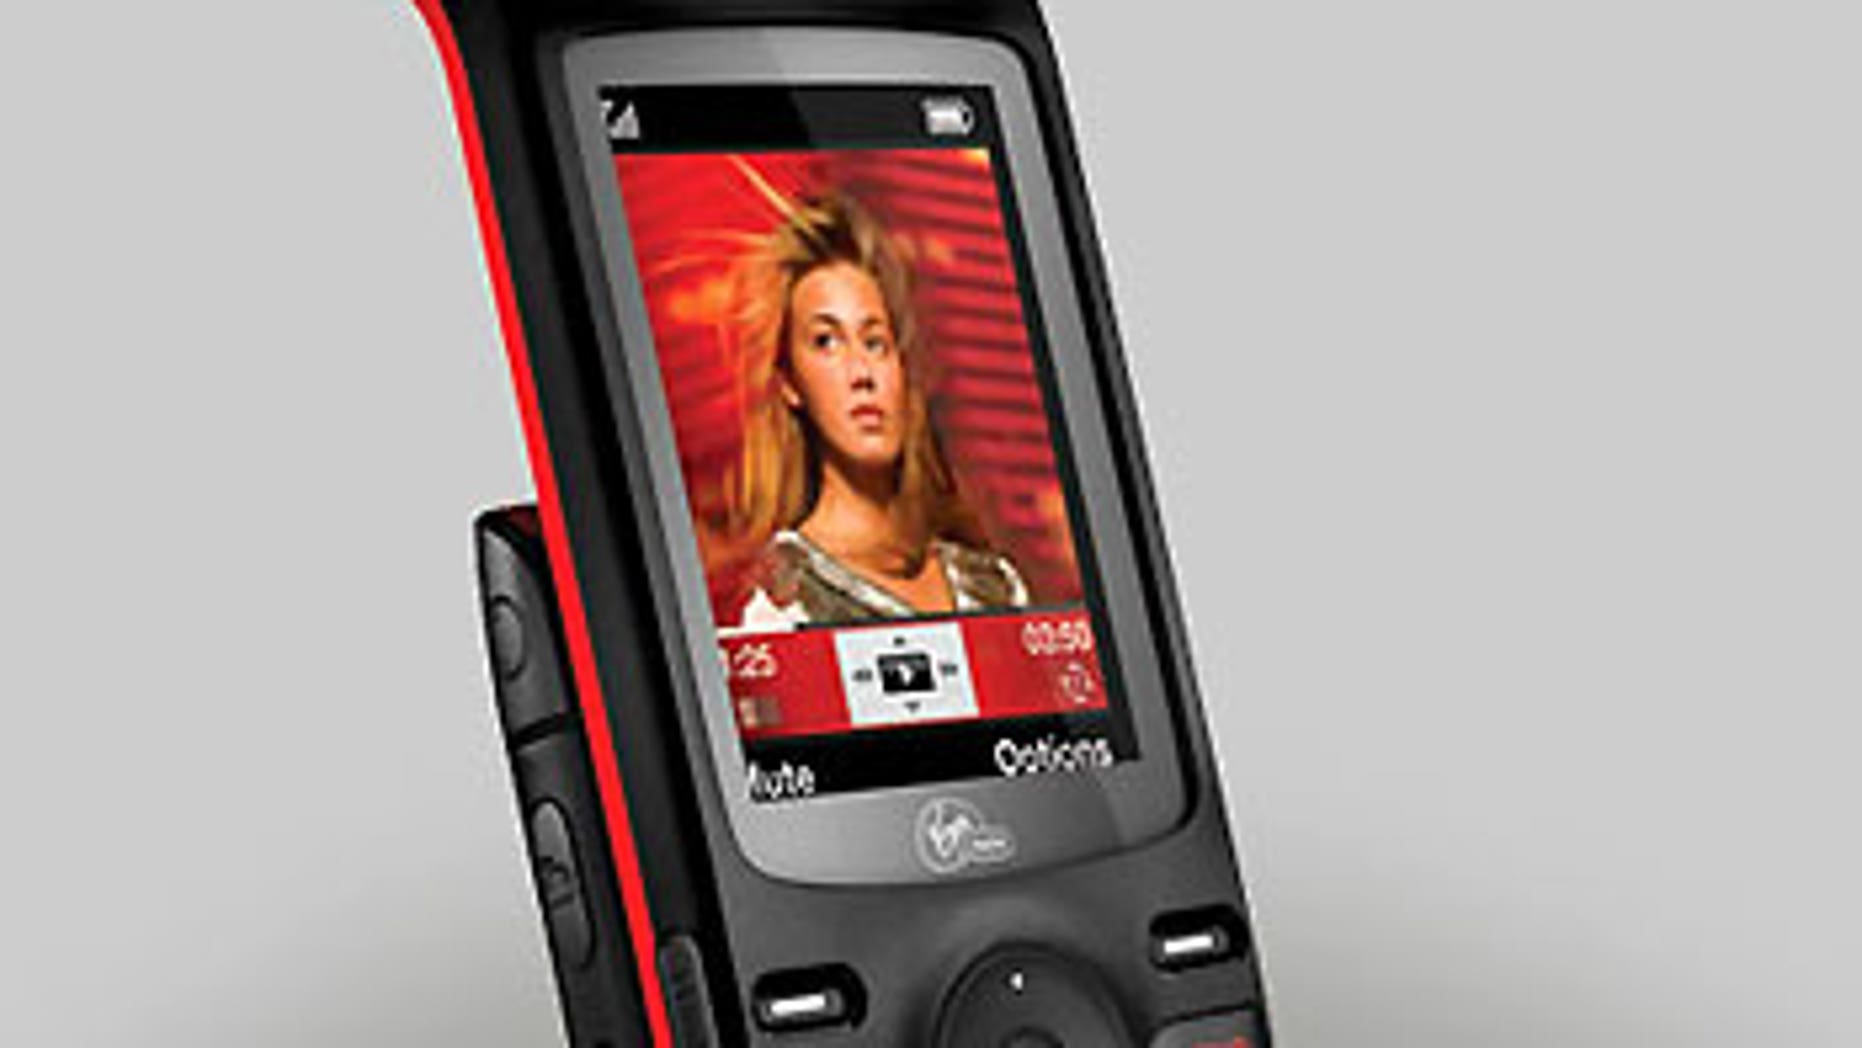 Virgin Mobile's 'Shuttle' phone, made by UTStarcom.